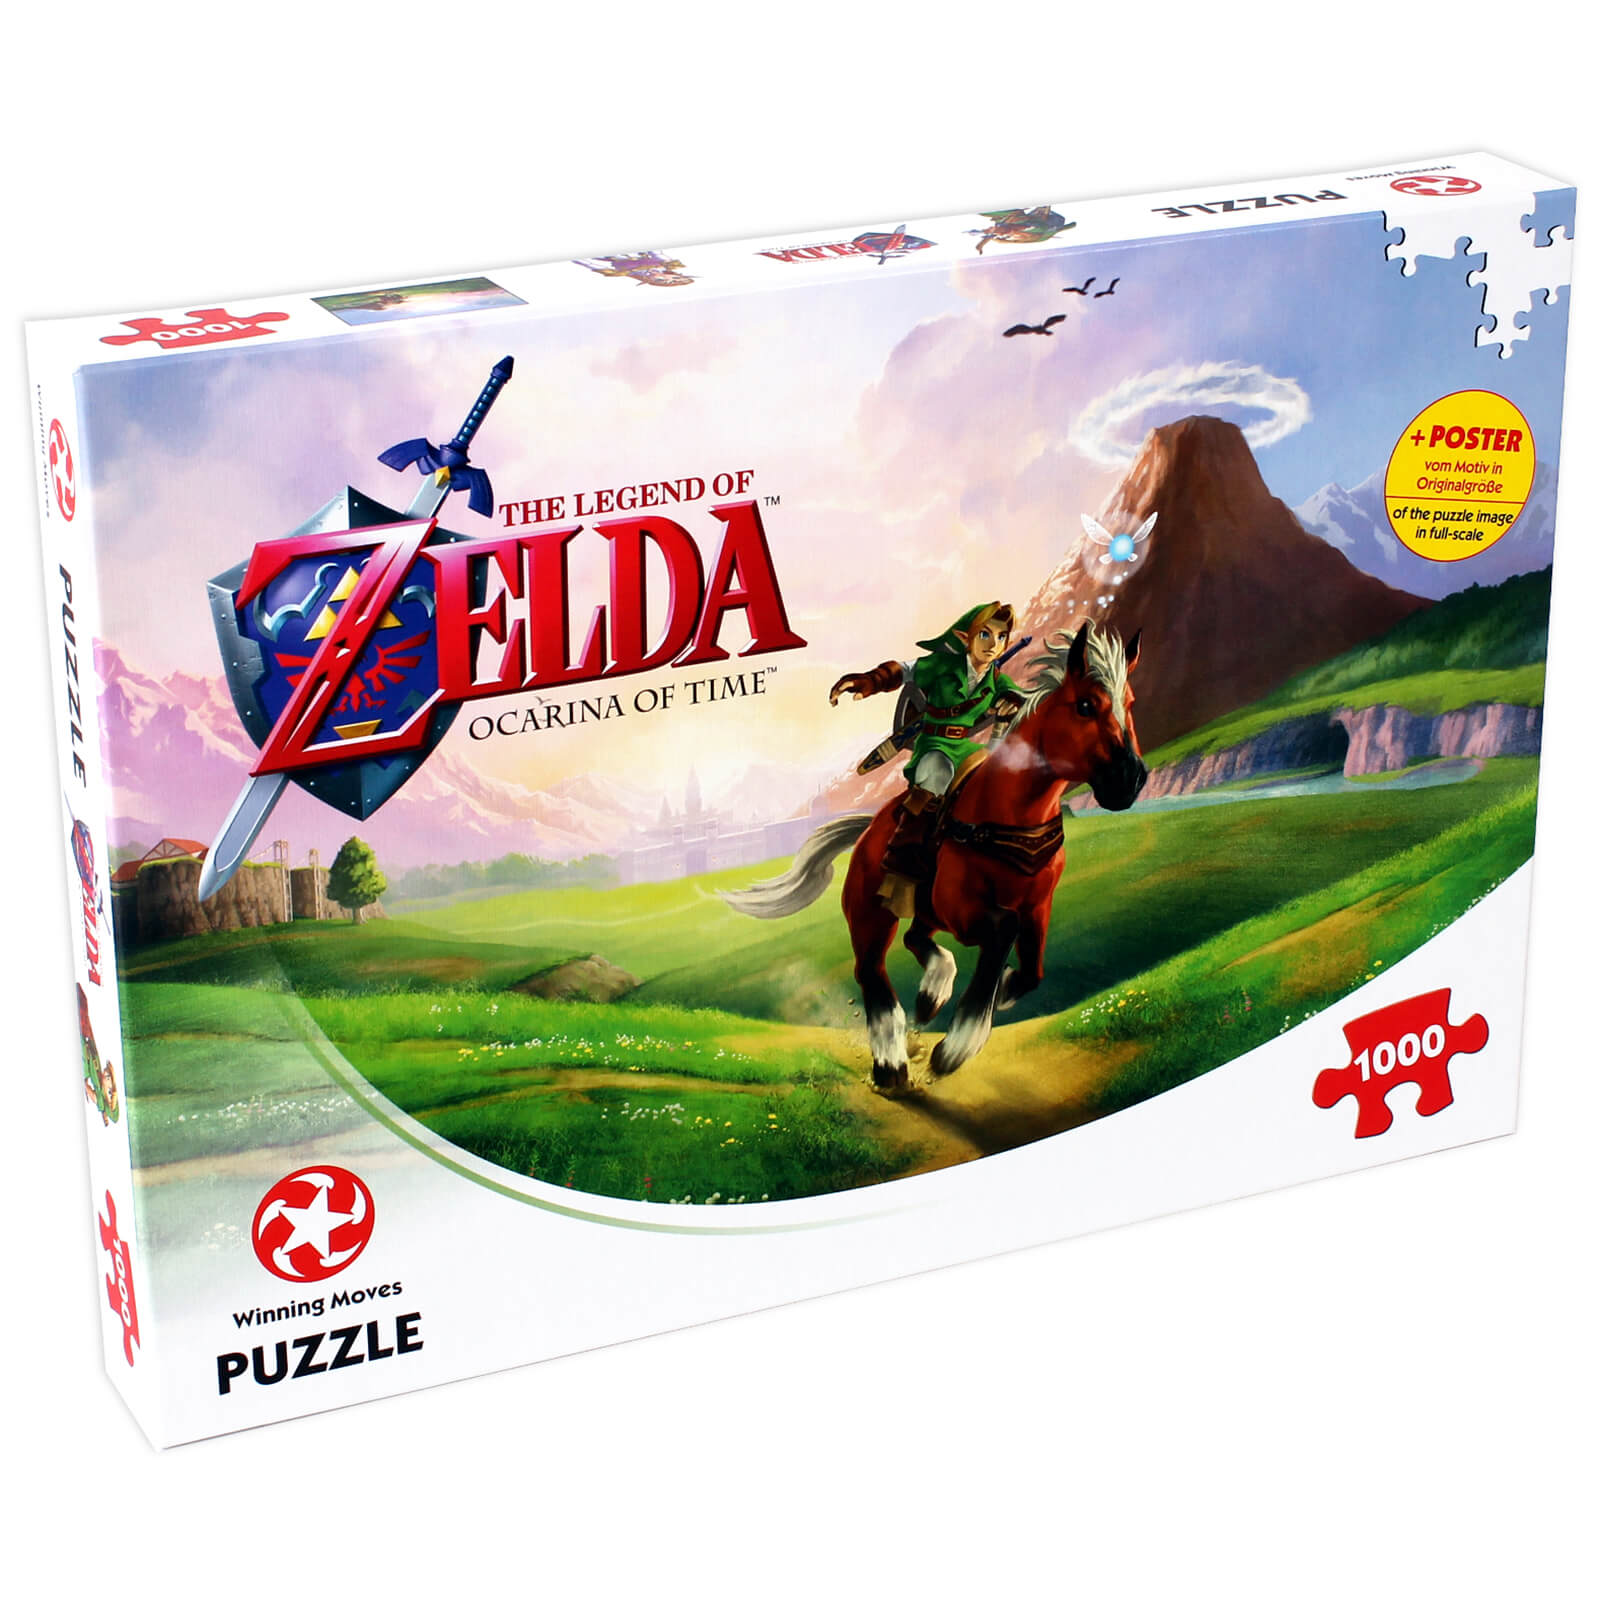 Image of 1000 Piece Jigsaw Puzzle - The Legend of Zelda Ocarina of Time Edition